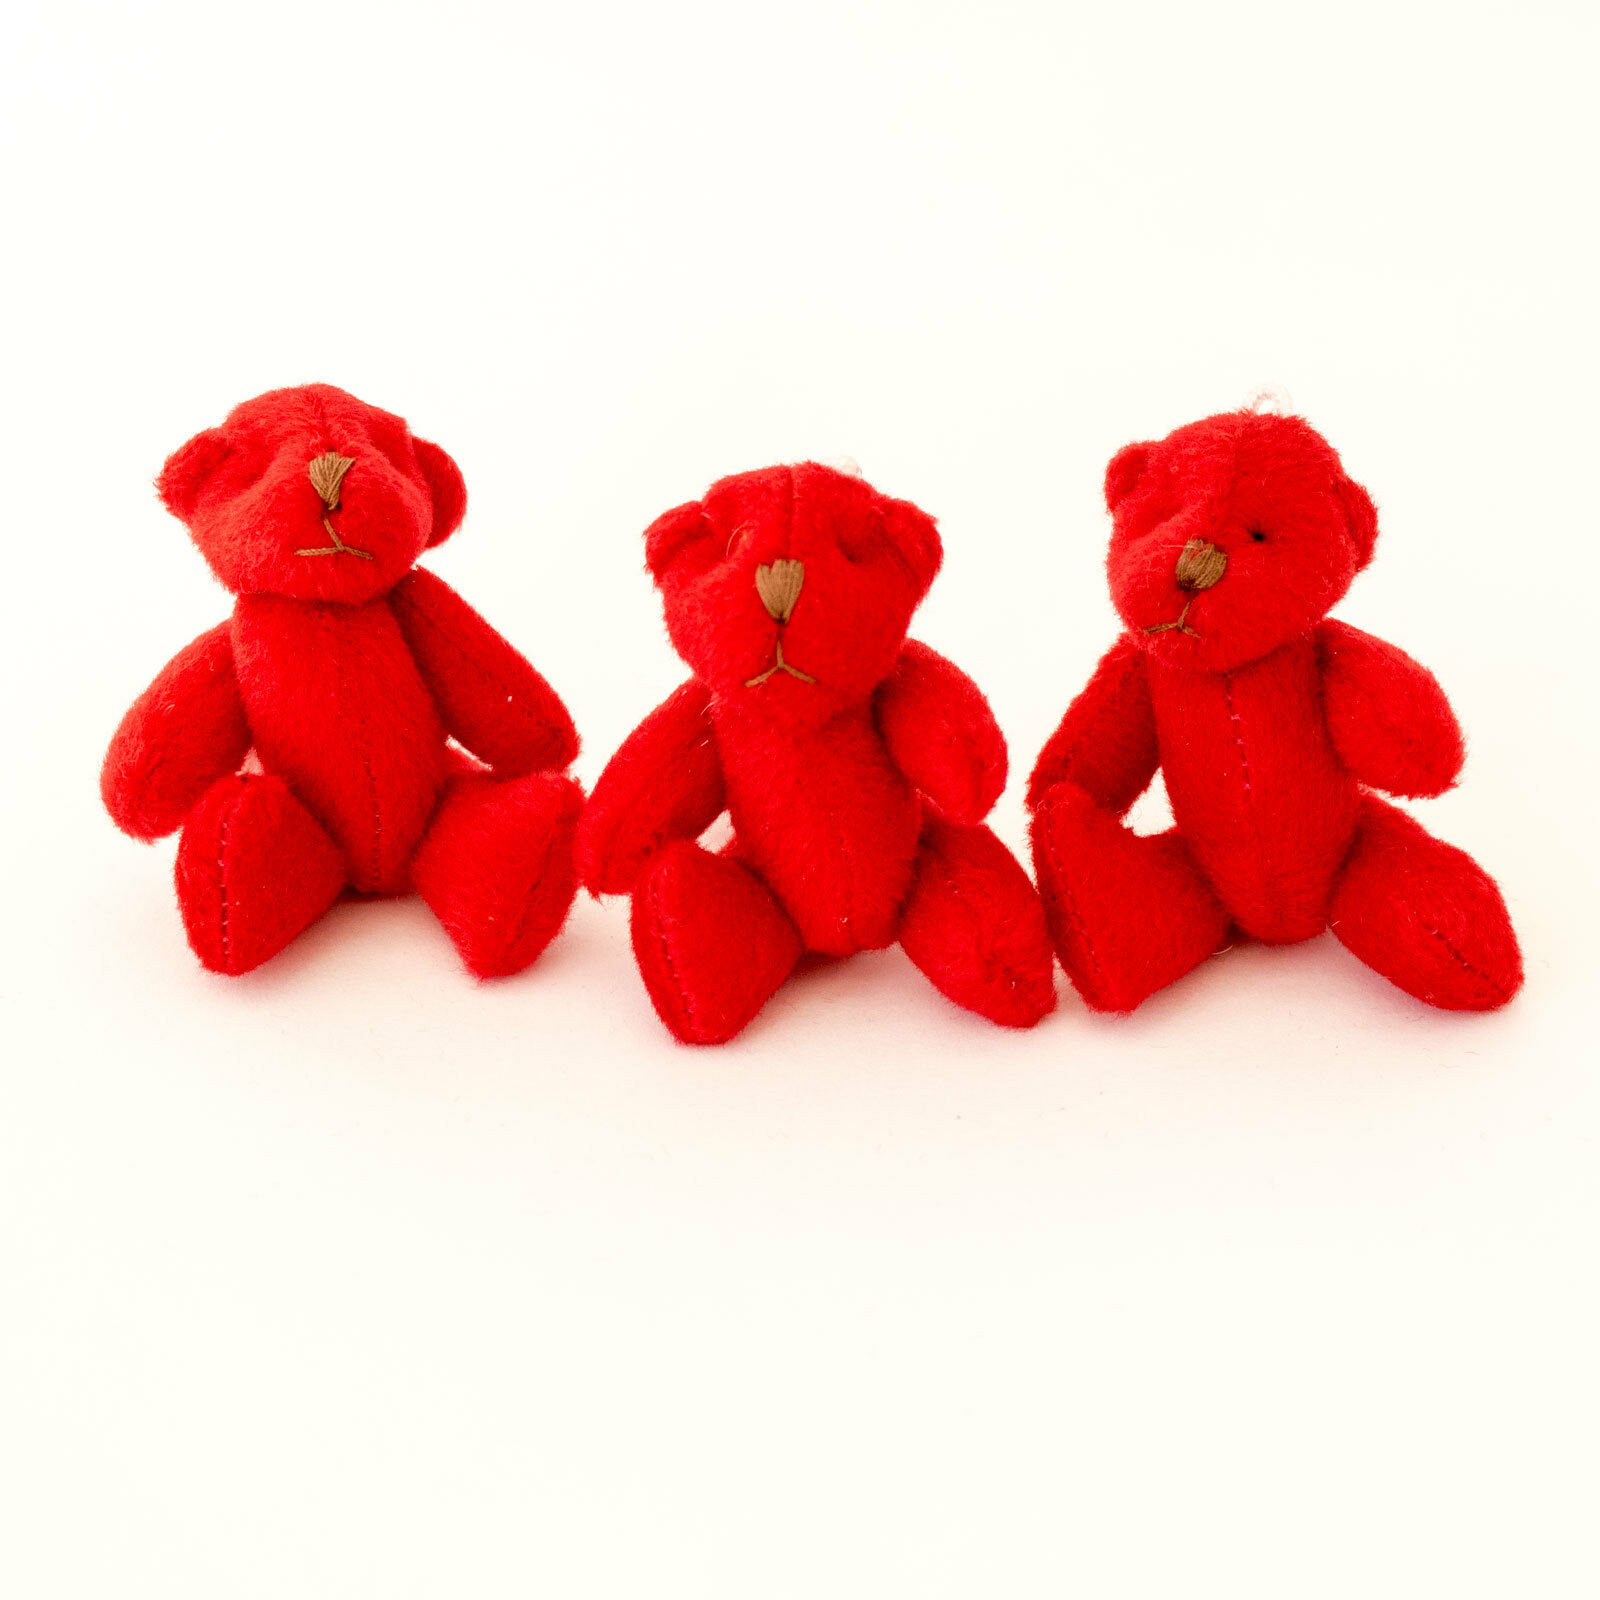 NEW - 150 X rot Teddy Bears - - - Small Cute Cuddly Adorable - Gift Present 0d5bb6